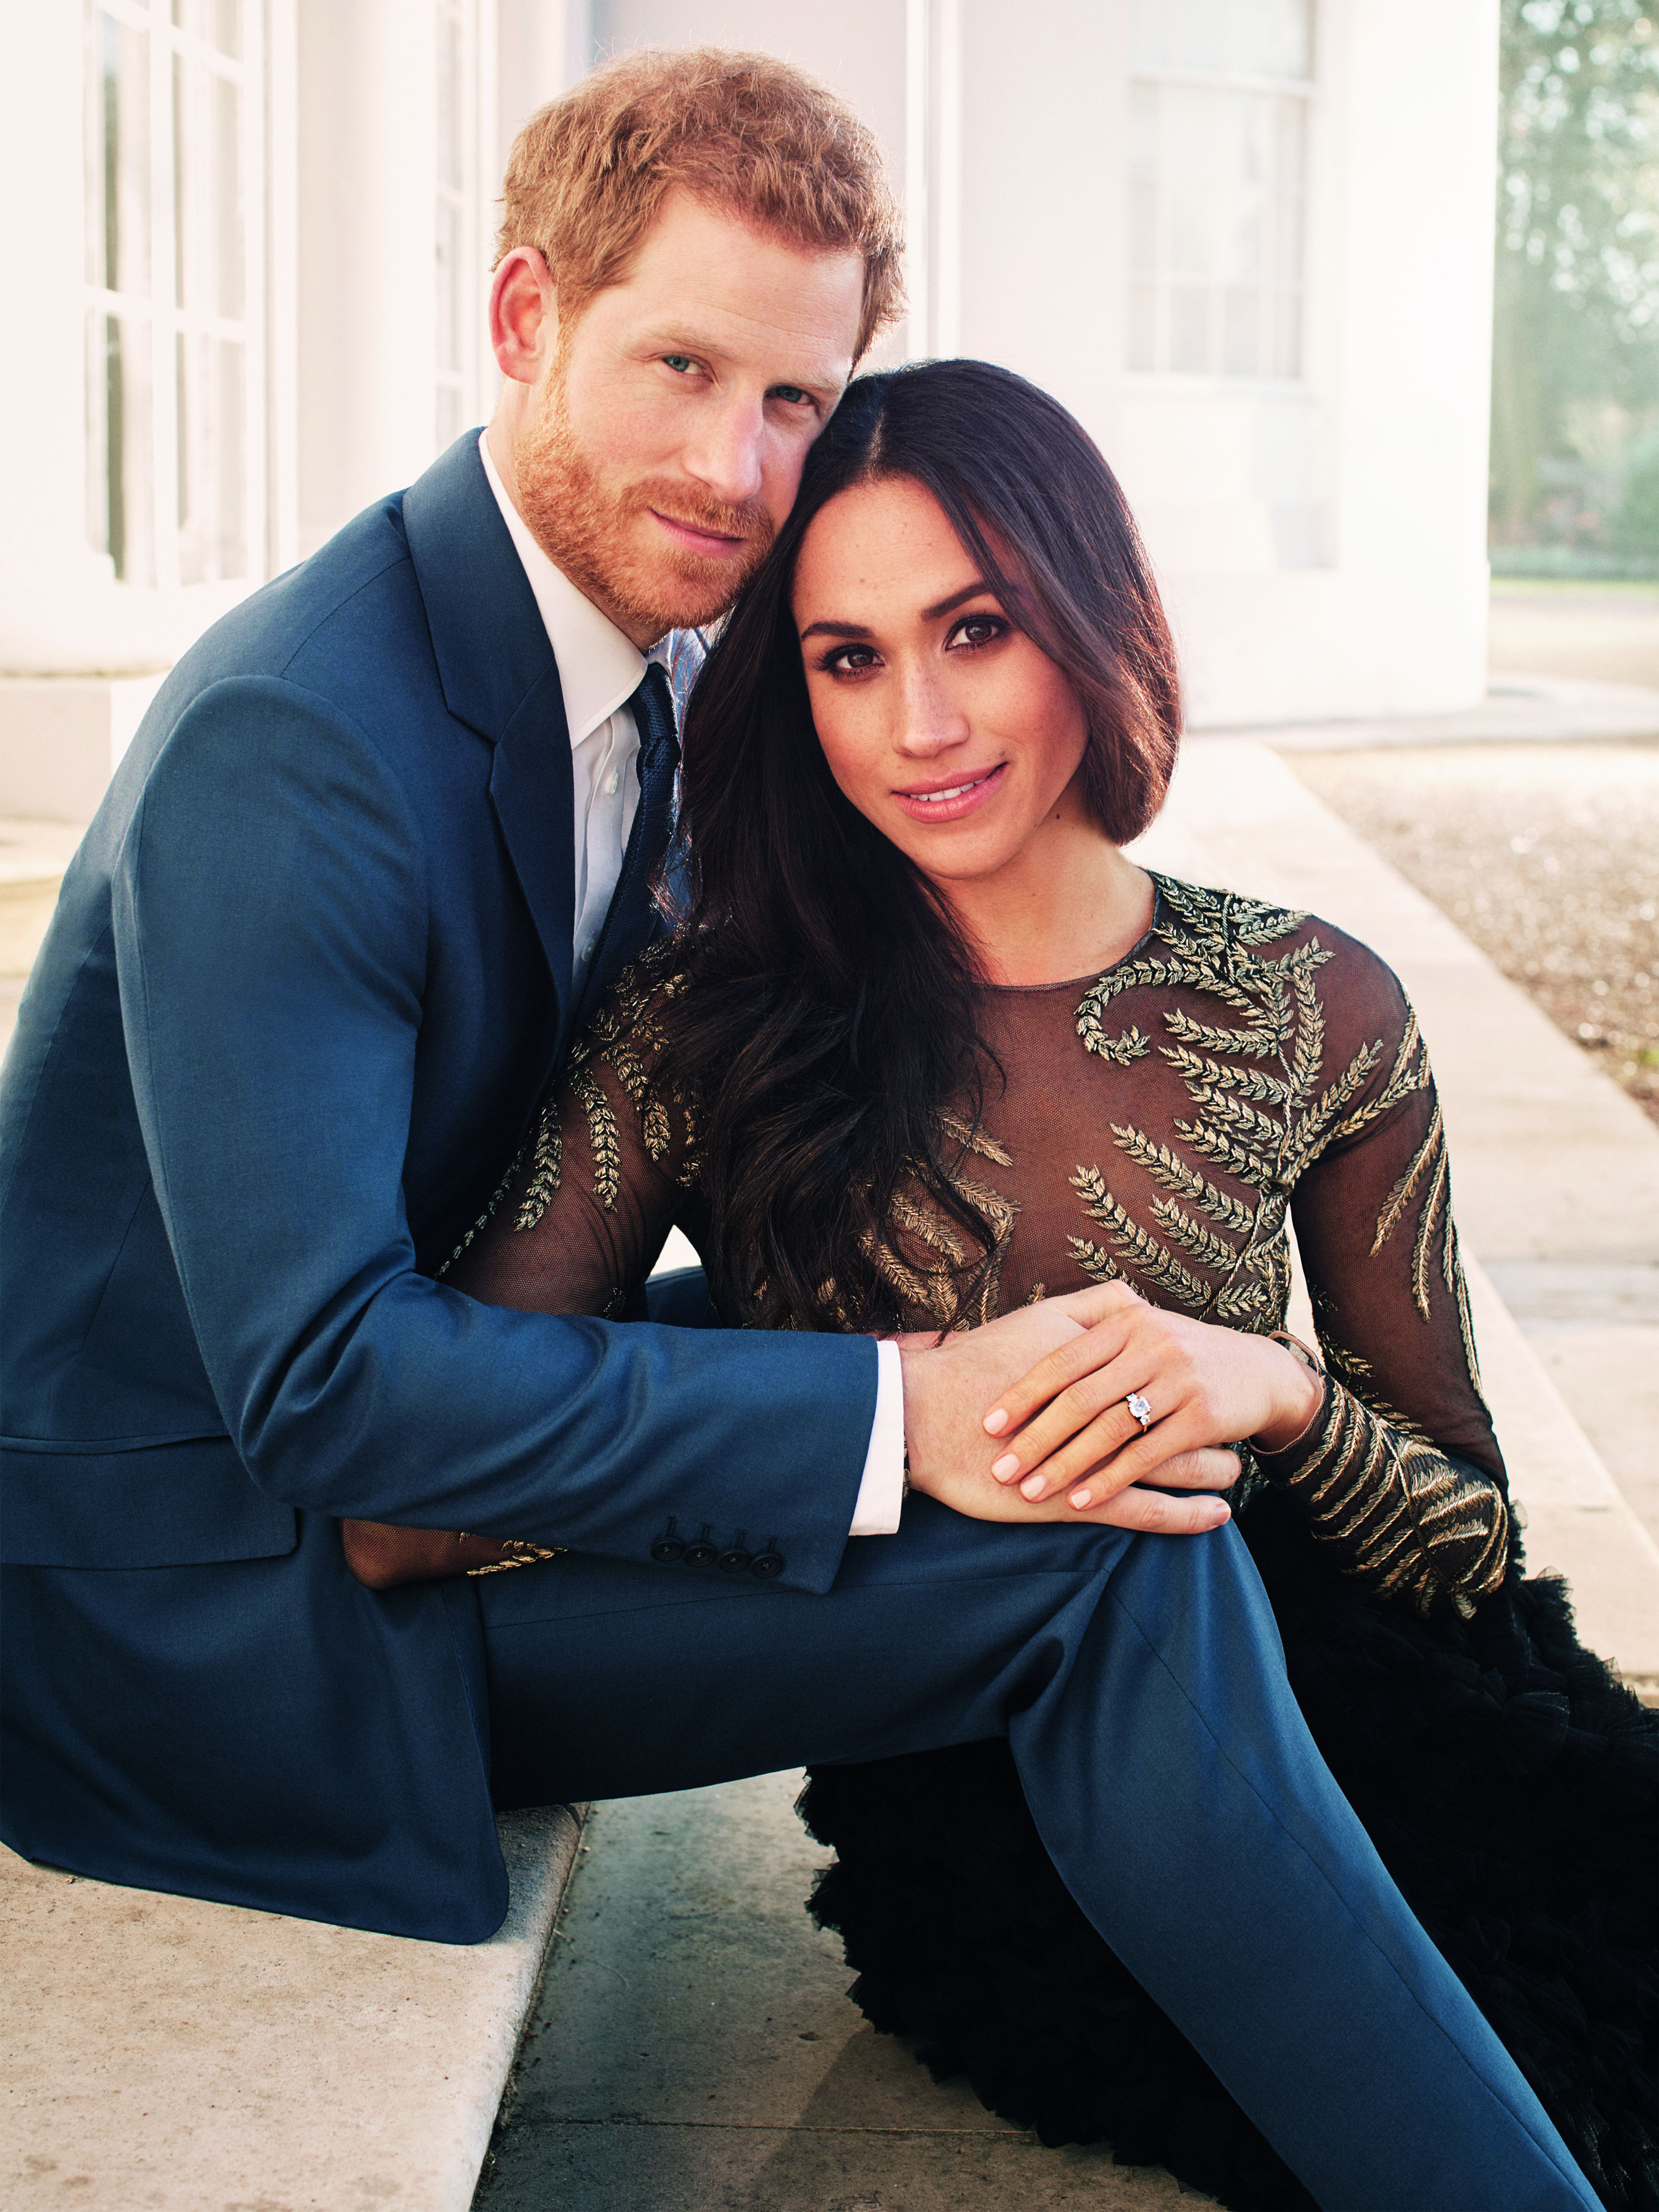 Photo credit must read: Alexi Lubomirski HANDOUT EDITORIAL USE ONLY/NO SALESMandatory Credit: Photo by Alexi Lubomirski/HANDOUT/EPA-EFE/REX/Shutterstock (9299315b)A handout photo made available on 21 December 2017 shows one of two official engagement photos released by Kensington Palace of Britain's Prince Harry (L) and his fiancee, US actress Meghan Markle taken by British-born fashion photographer Alexi Lubomirski earlier this week at Frogmore House, near Windsor Castle, west of London, Britain. The royal couple are due to marry on 19 May 2018.ATTENTION EDITORS: Terms of release, which must be included and passed-on to anyone to whom this image is supplied: USE AFTER 31/05/2018 must be cleared by Kensington Palace. This photograph is for editorial use only. NO commercial use. NO use in calendars, books or supplements. Use on a cover, or for any other purpose, will require approval from Art Partner and the Kensington Palace Press Office. There is no charge for the supply, release or publication of this official photograph. This photograph must not be digitally enhanced, manipulated or modified and must be used substantially uncropped. Copyright in the photographs is vested in Prince Harry and Ms. Meghan Markle. Publications are asked to credit the photograph to Alexi Lubomirski.Prince Harry and Meghan Markle official engagement portraits, Windsor, United Kingdom - 21 Dec 2017